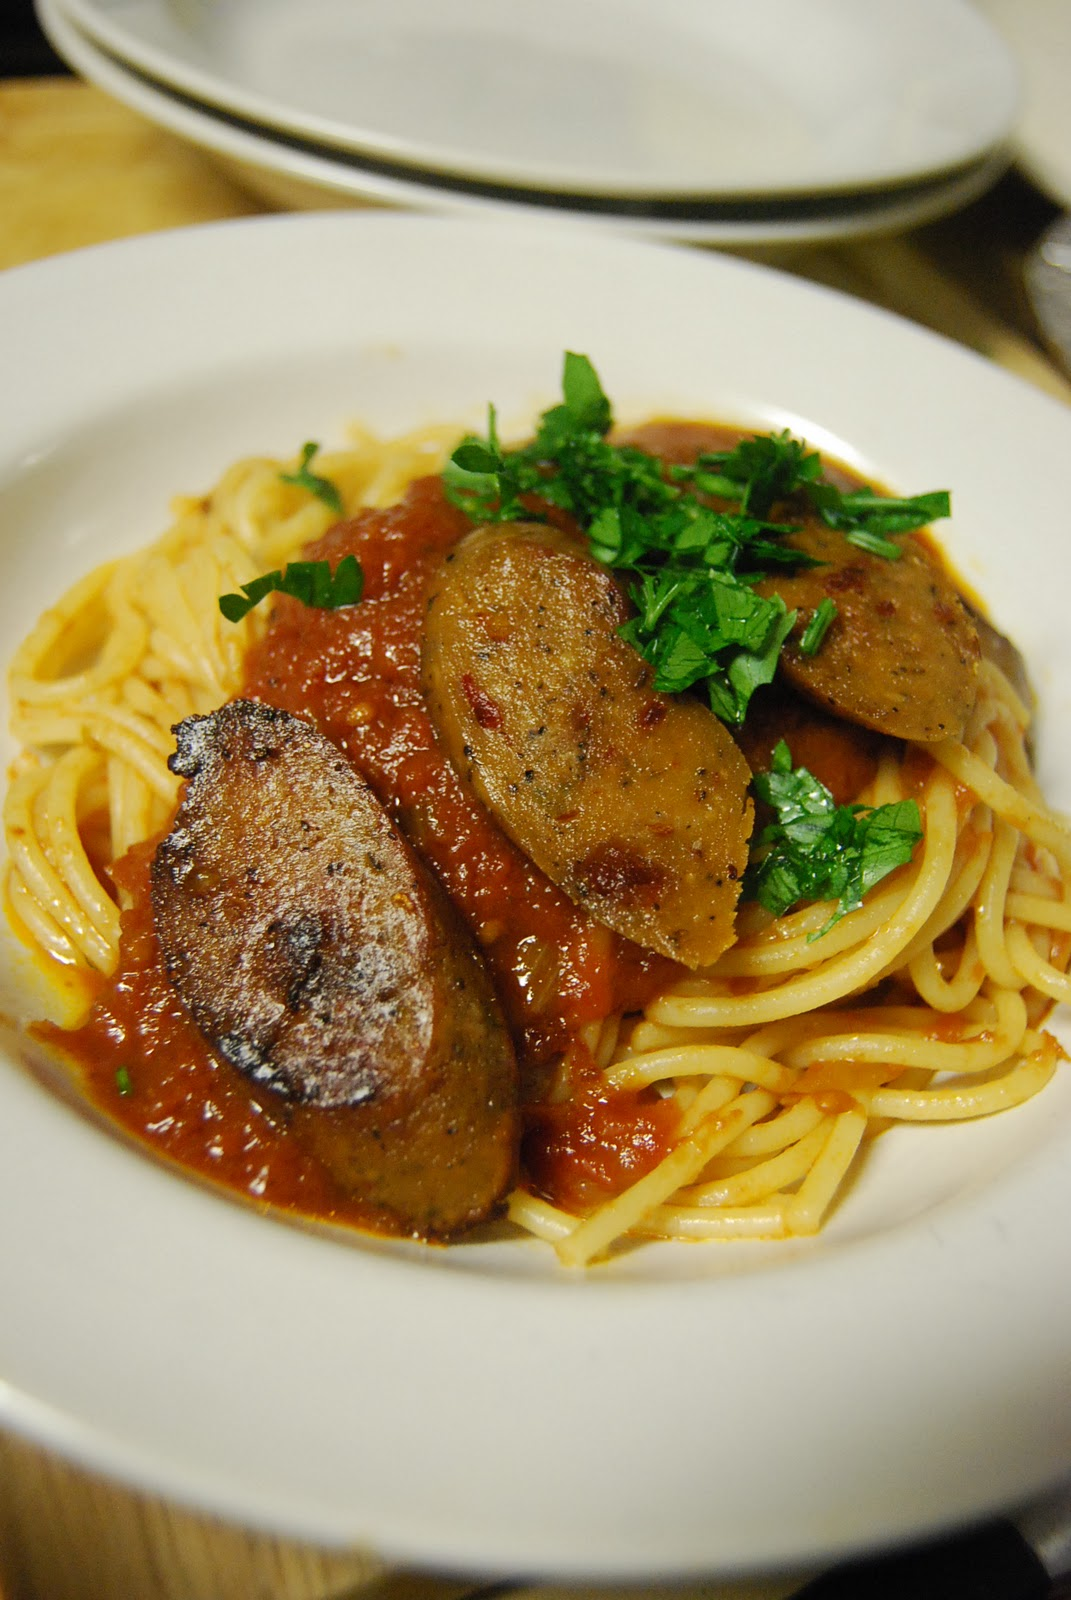 Kirsten's Kitchen: of vegan creations: Italian Sausage Spaghetti